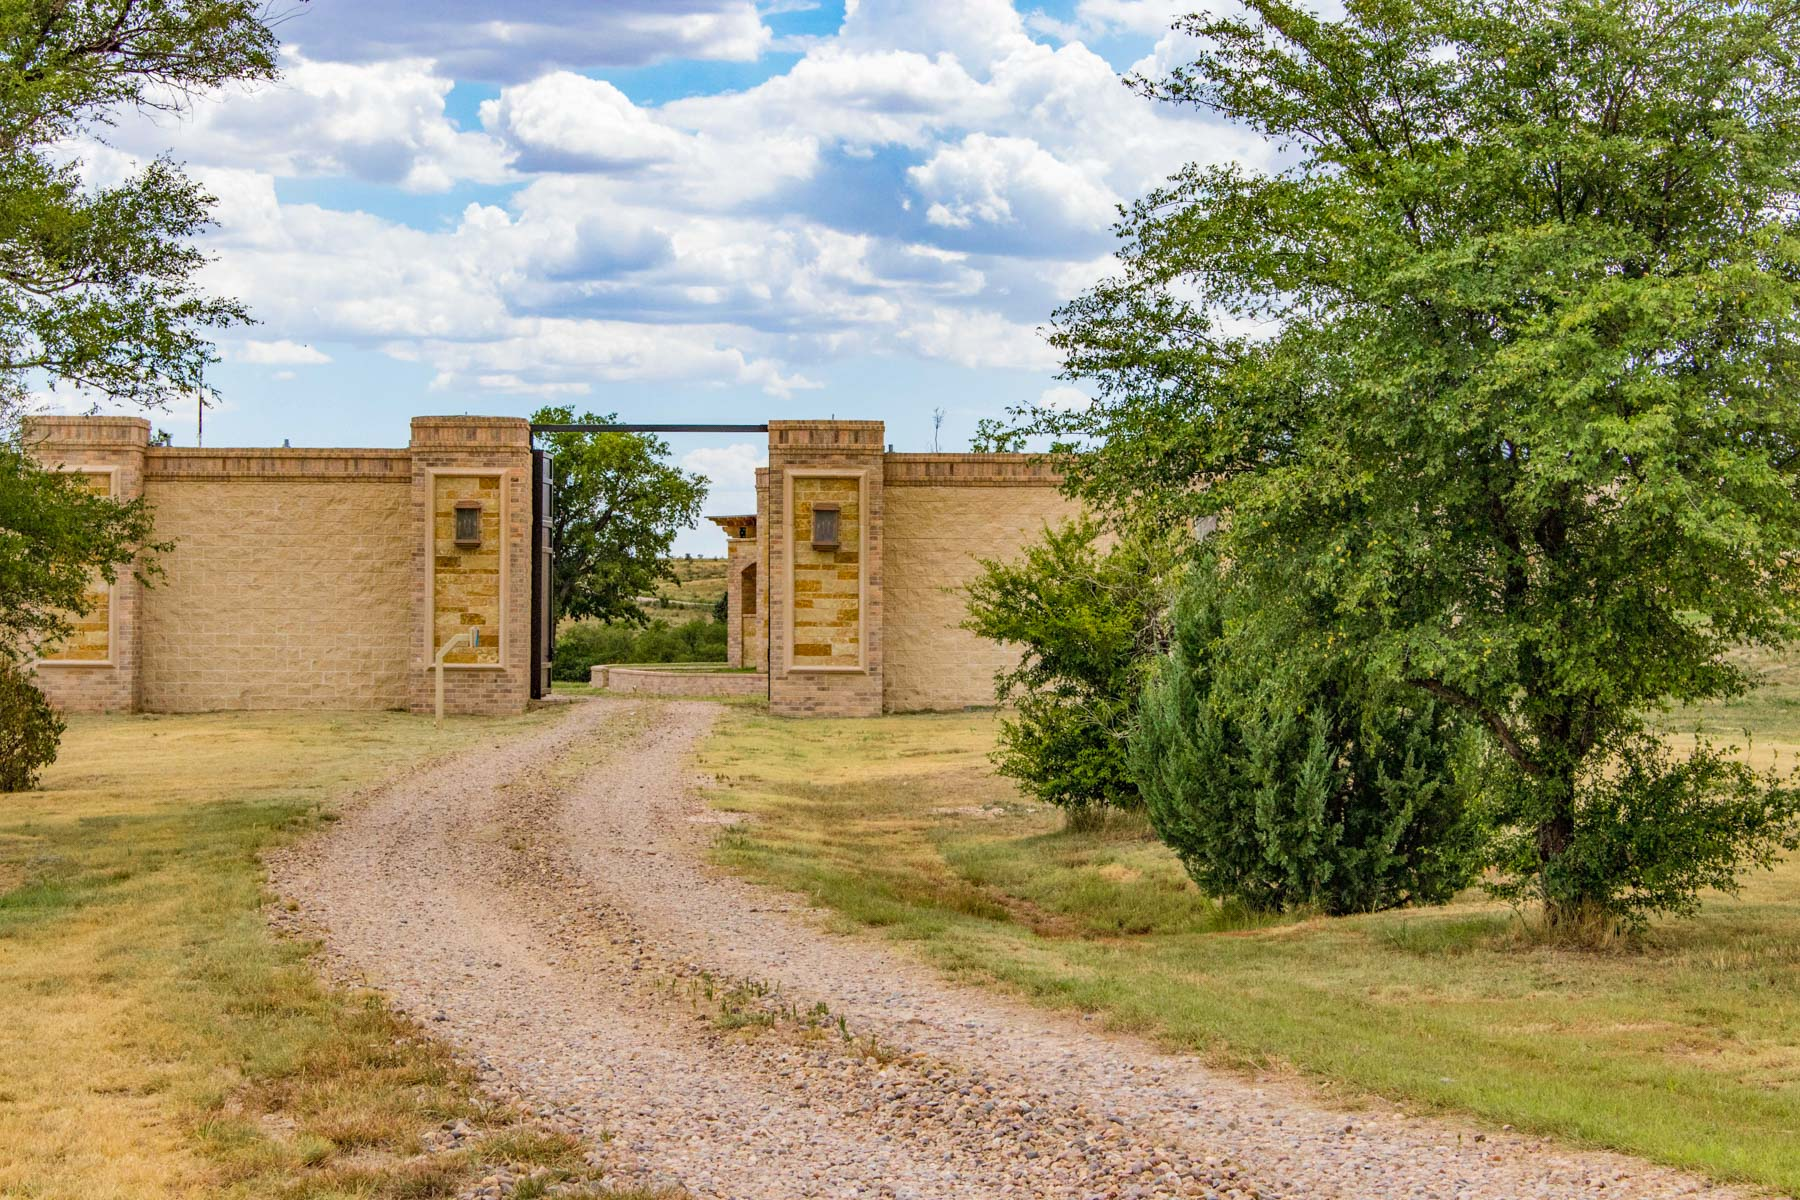 Single Family Home for Sale at Hope Survival Ranch 0 Hope Ranch Canyon, Texas 79016 United States